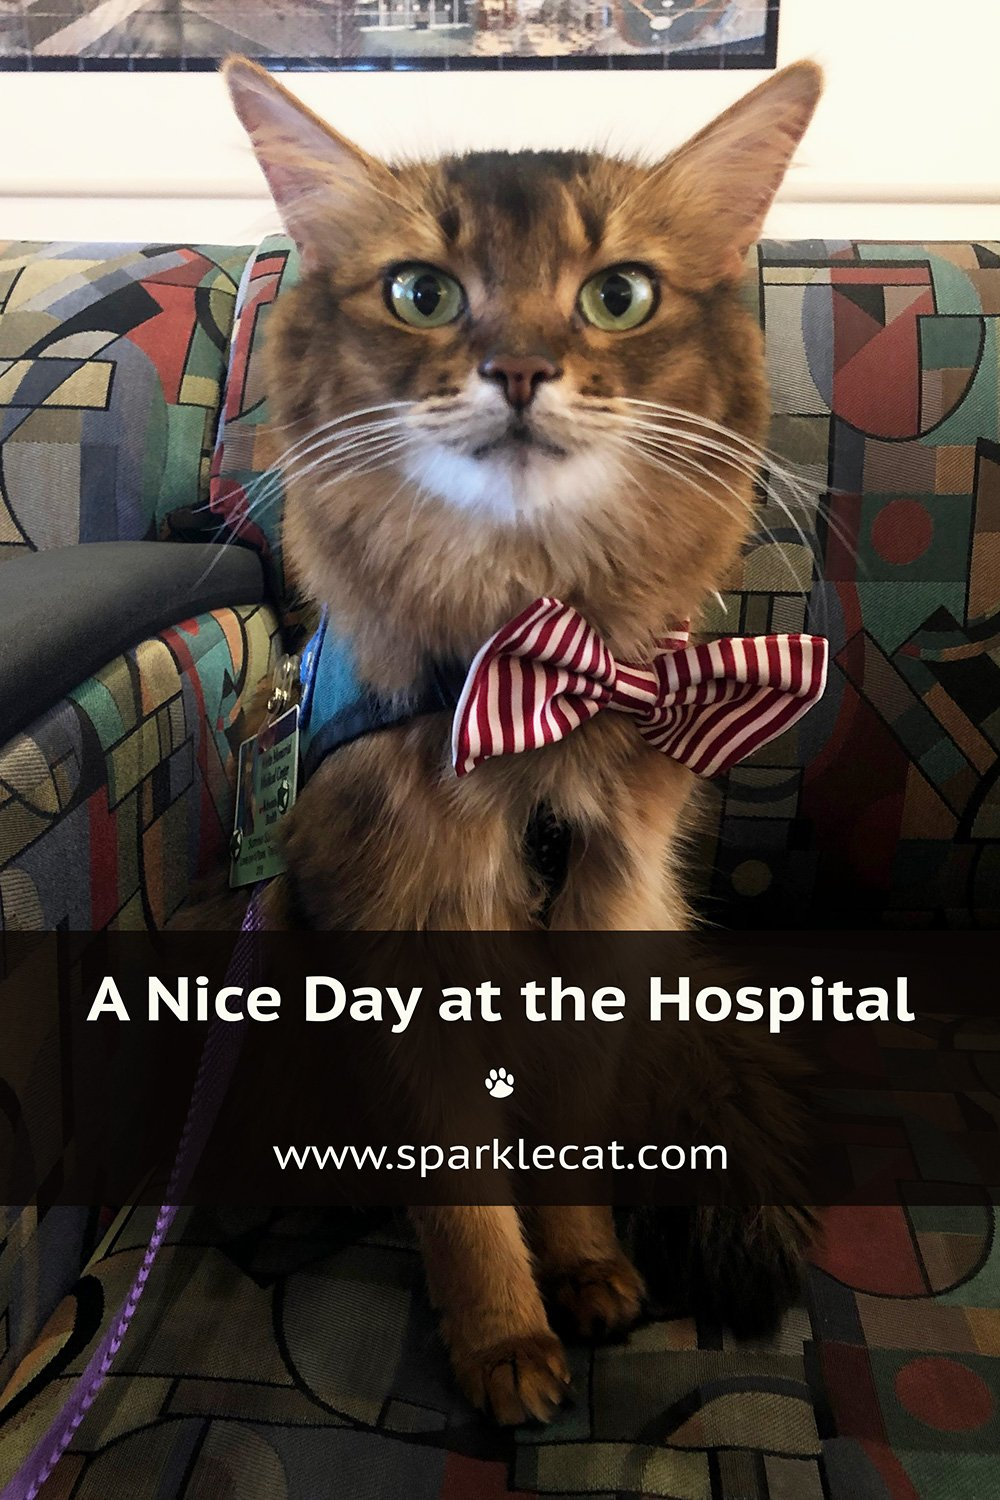 A Very Nice Day Visiting the Hospital